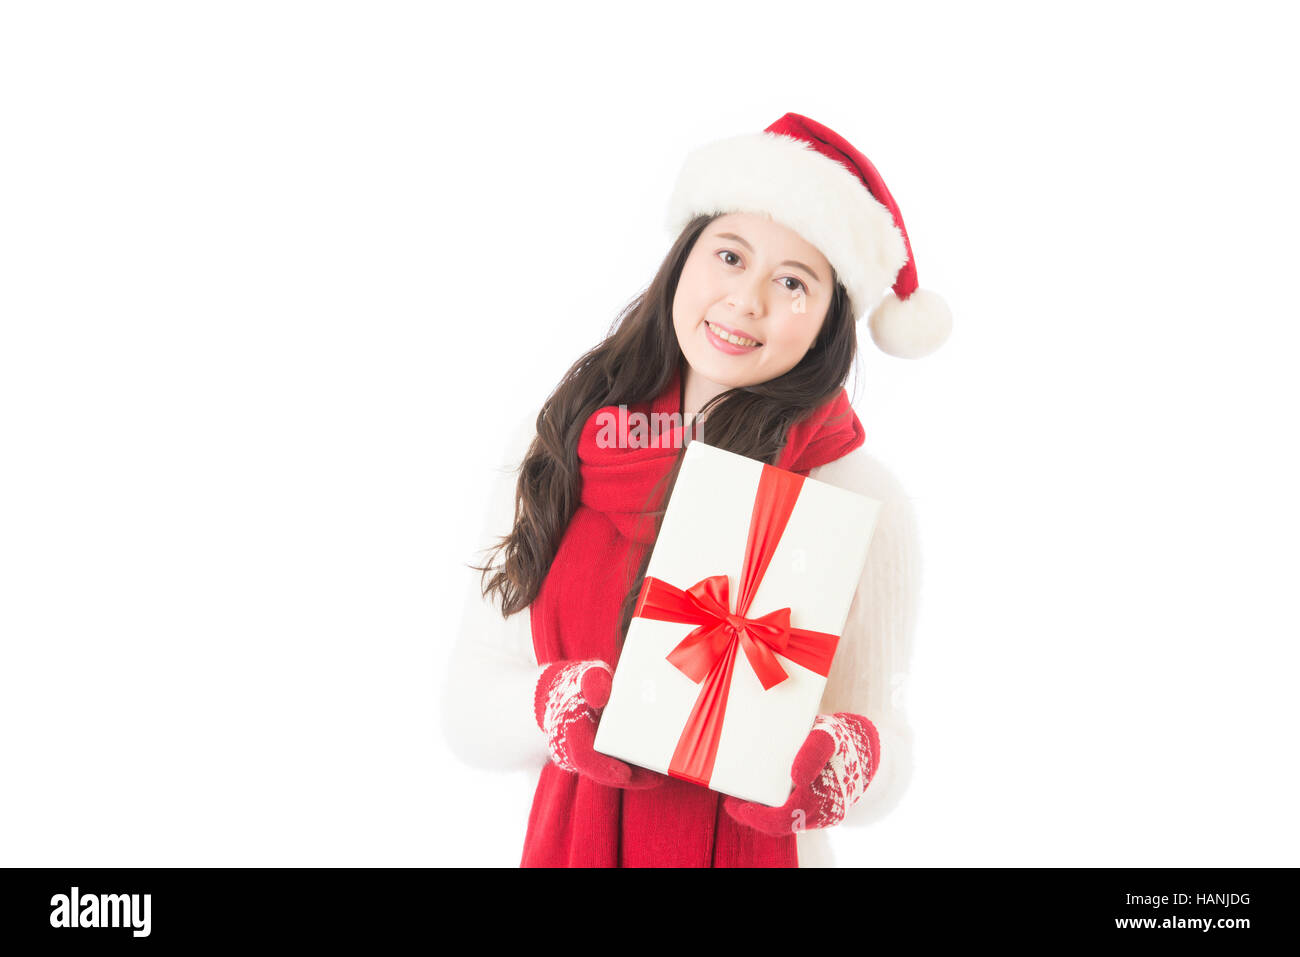 306f1a9f71b64 Christmas woman holding giving gift excited. Happy smiling woman in santa  hat giving you a present being joyful fresh and cheerful. Asian model isolat